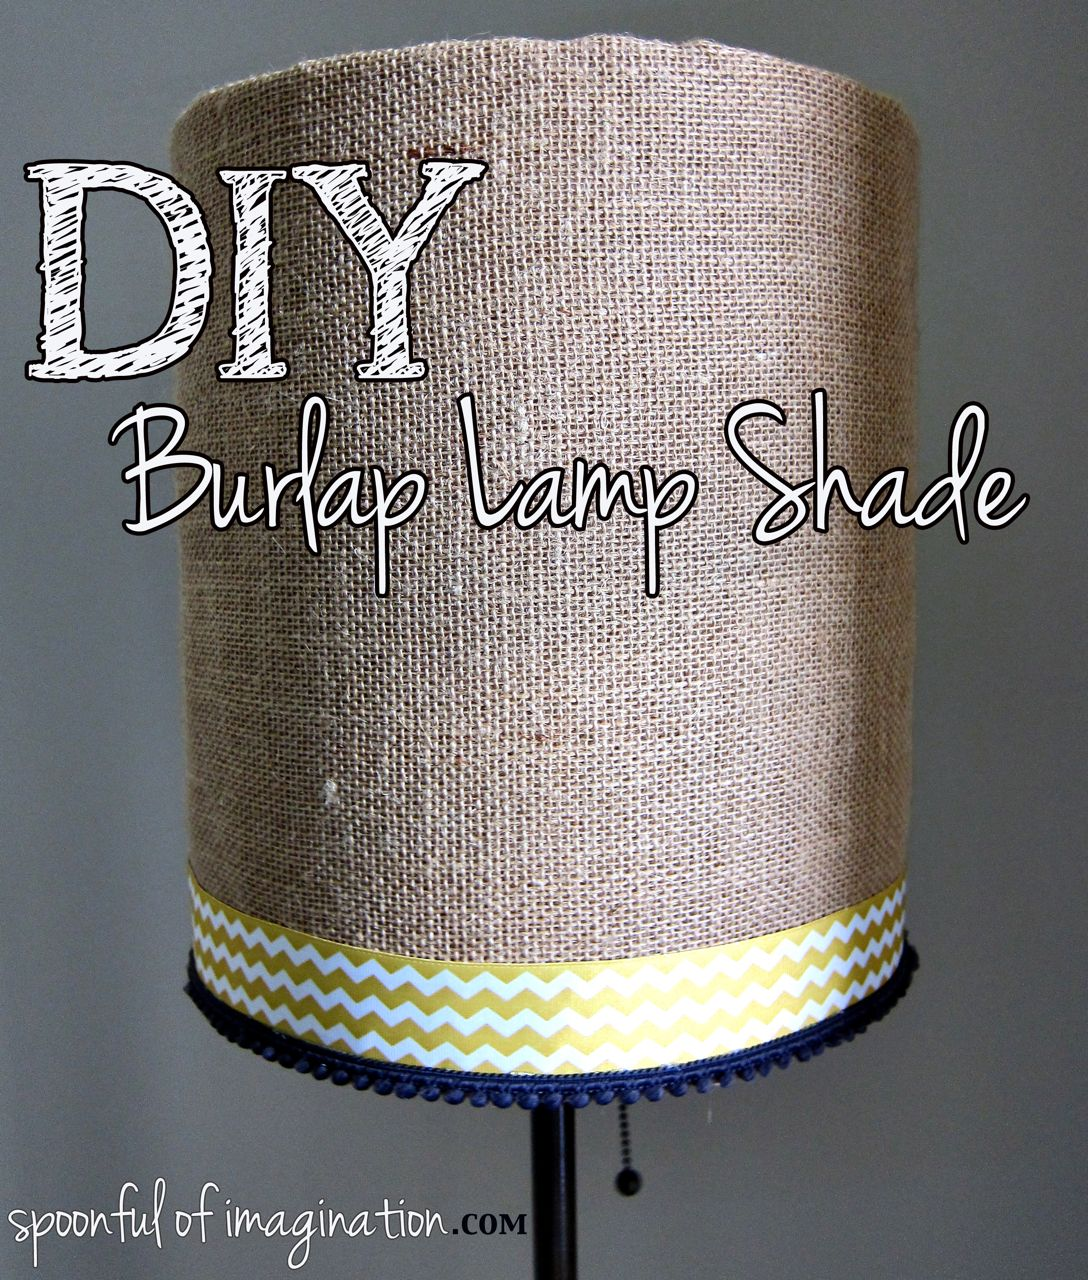 How to make burlap lamp shade 18 diy tutorials diy burlap lamp shade mozeypictures Image collections